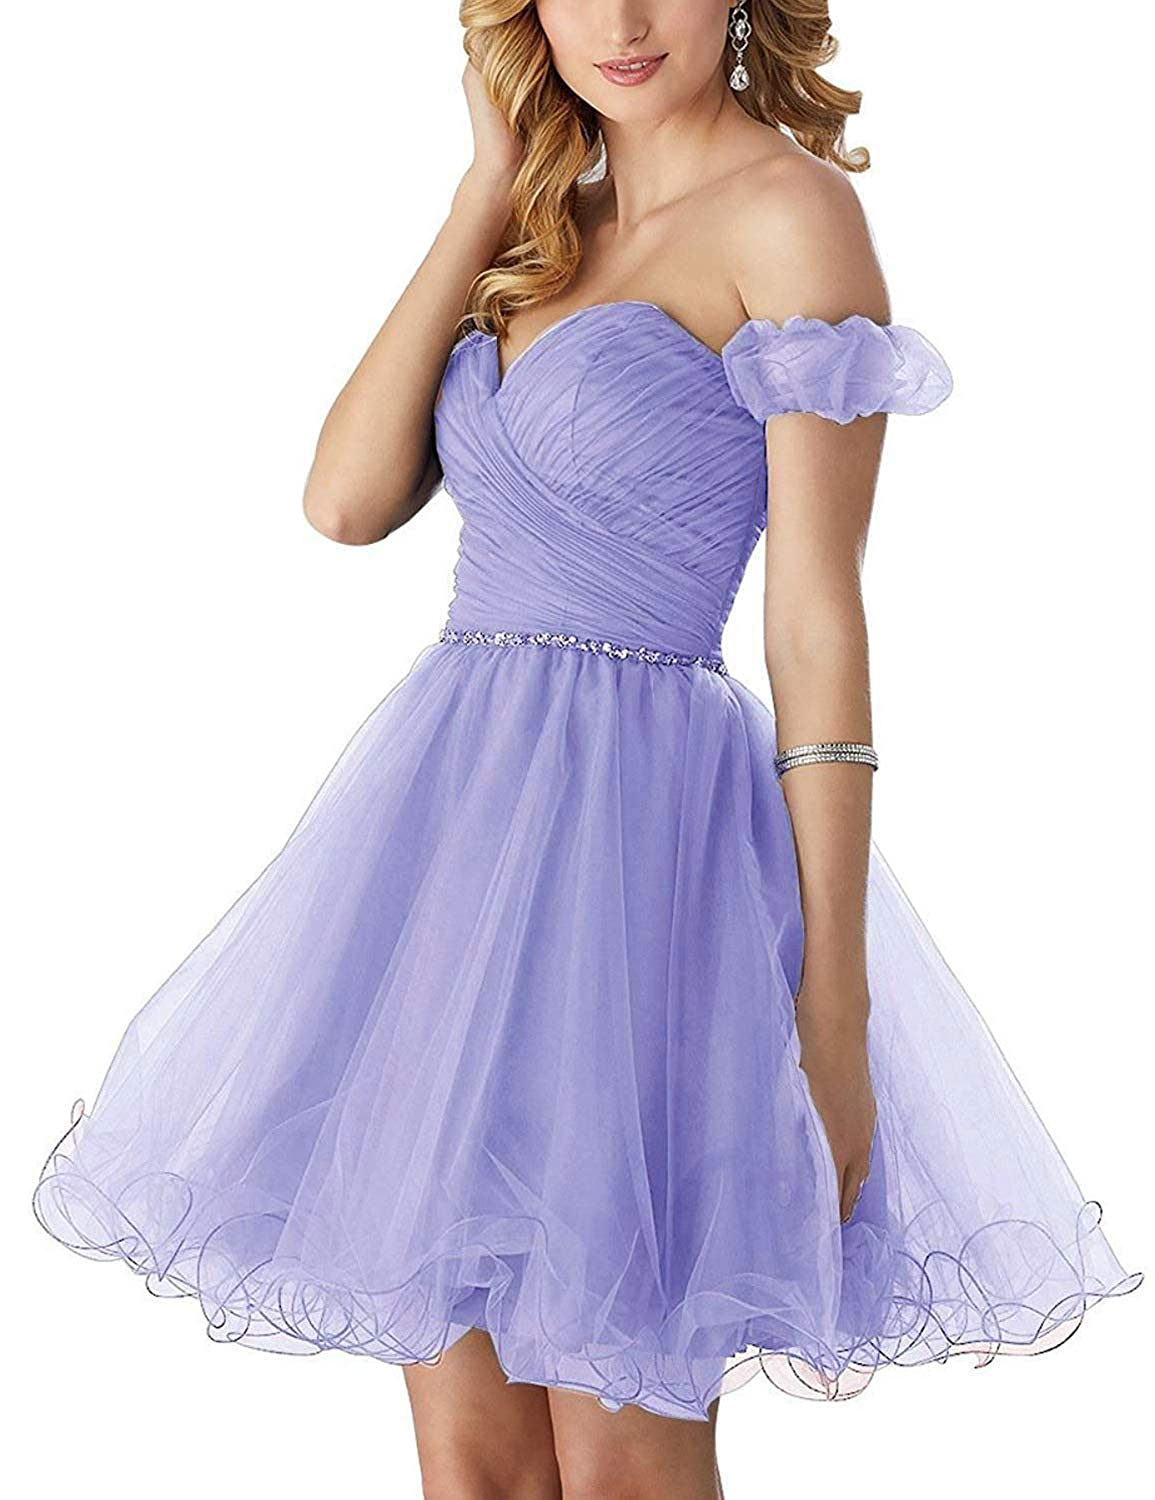 purplec Vimans Short Tulle Homecoming Dresses 2018 Off Shoulder Formal Prom Dress H129